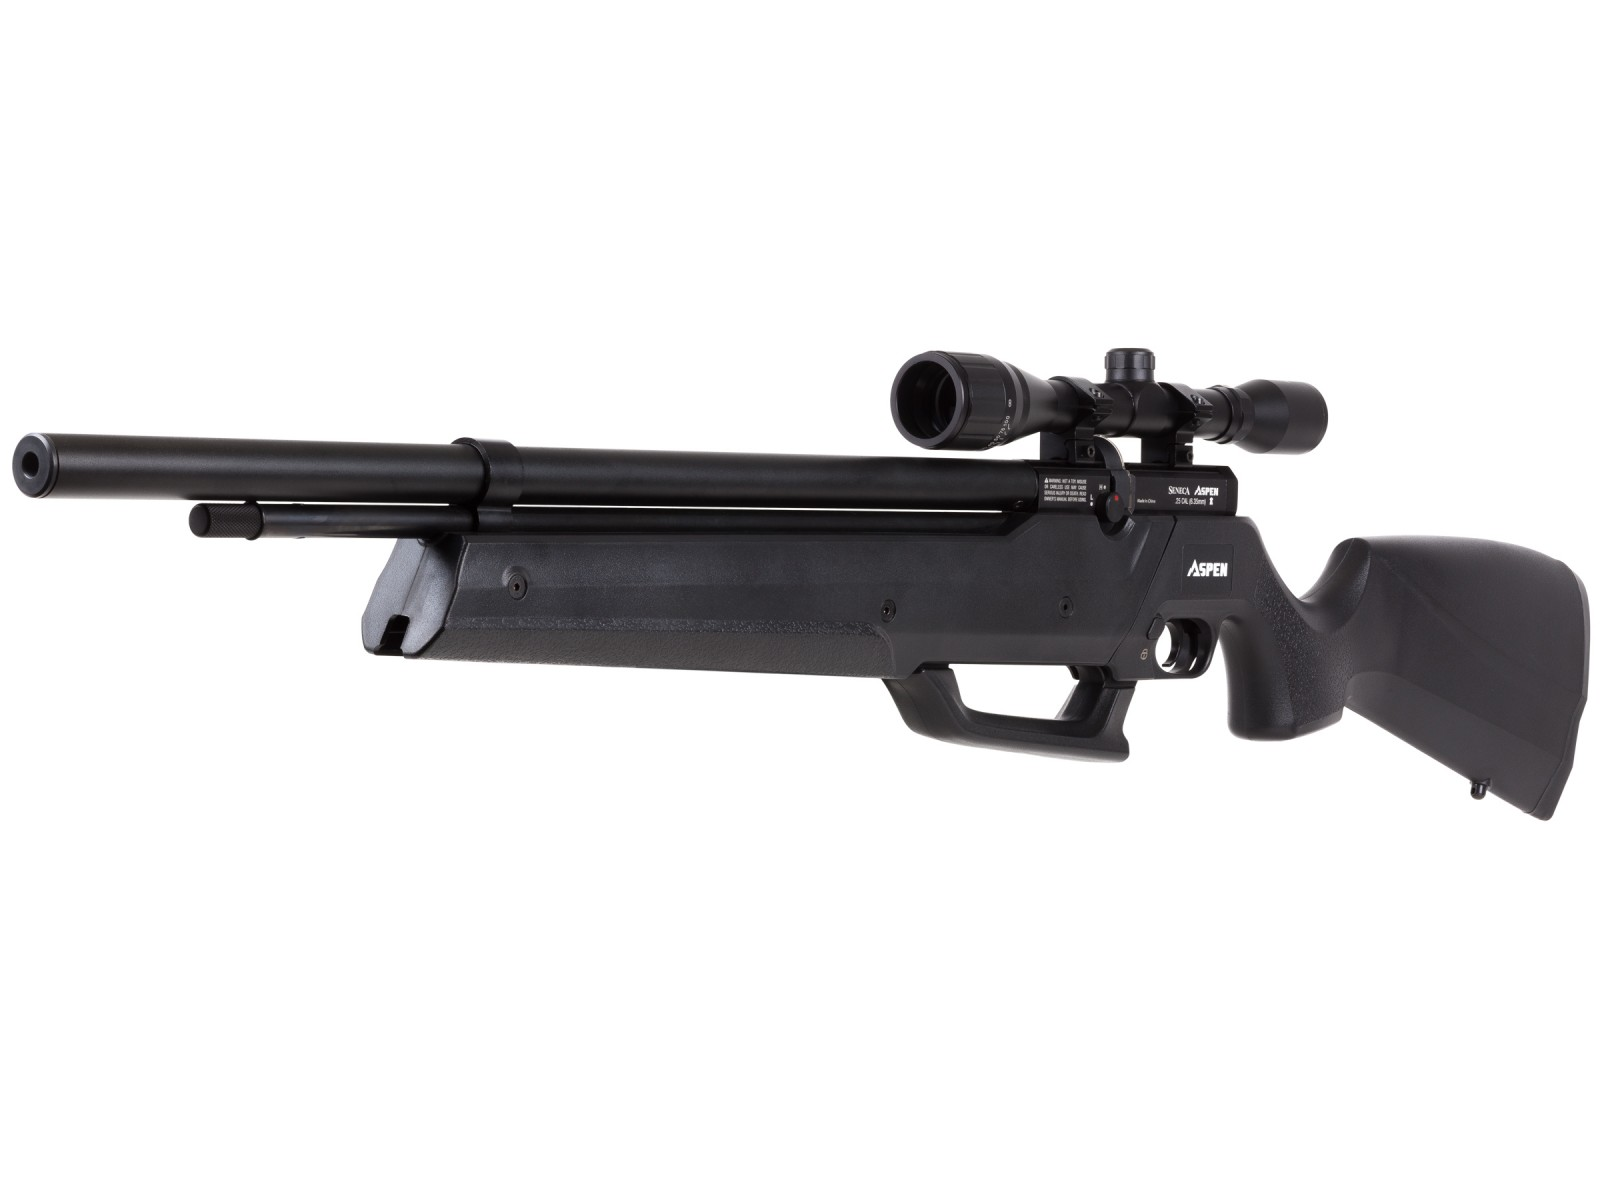 Seneca Aspen PCP Air Rifle, Multi-Pump PCP